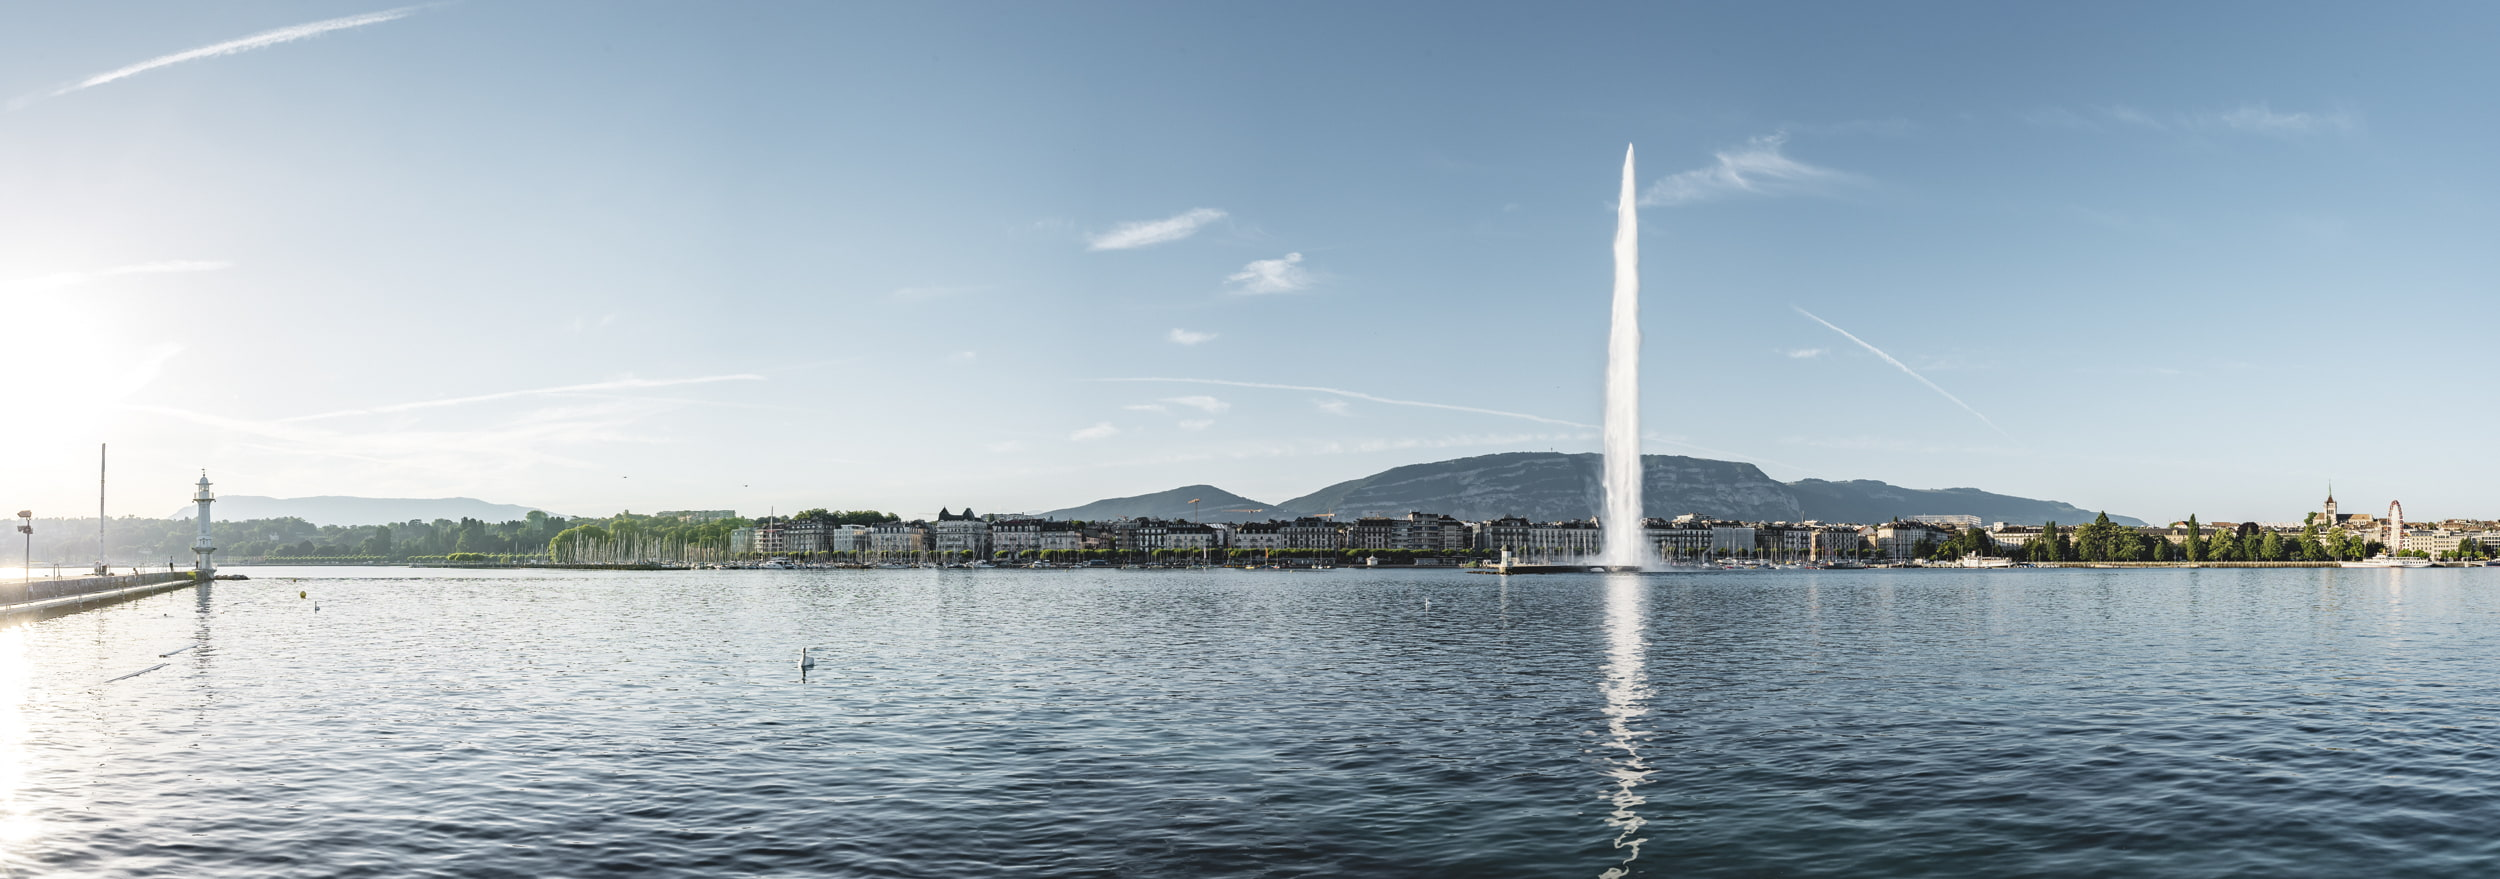 Hotels in Geneva Region - With a population of just under 200,000, Geneva is Switzerland's second largest city, the economic a